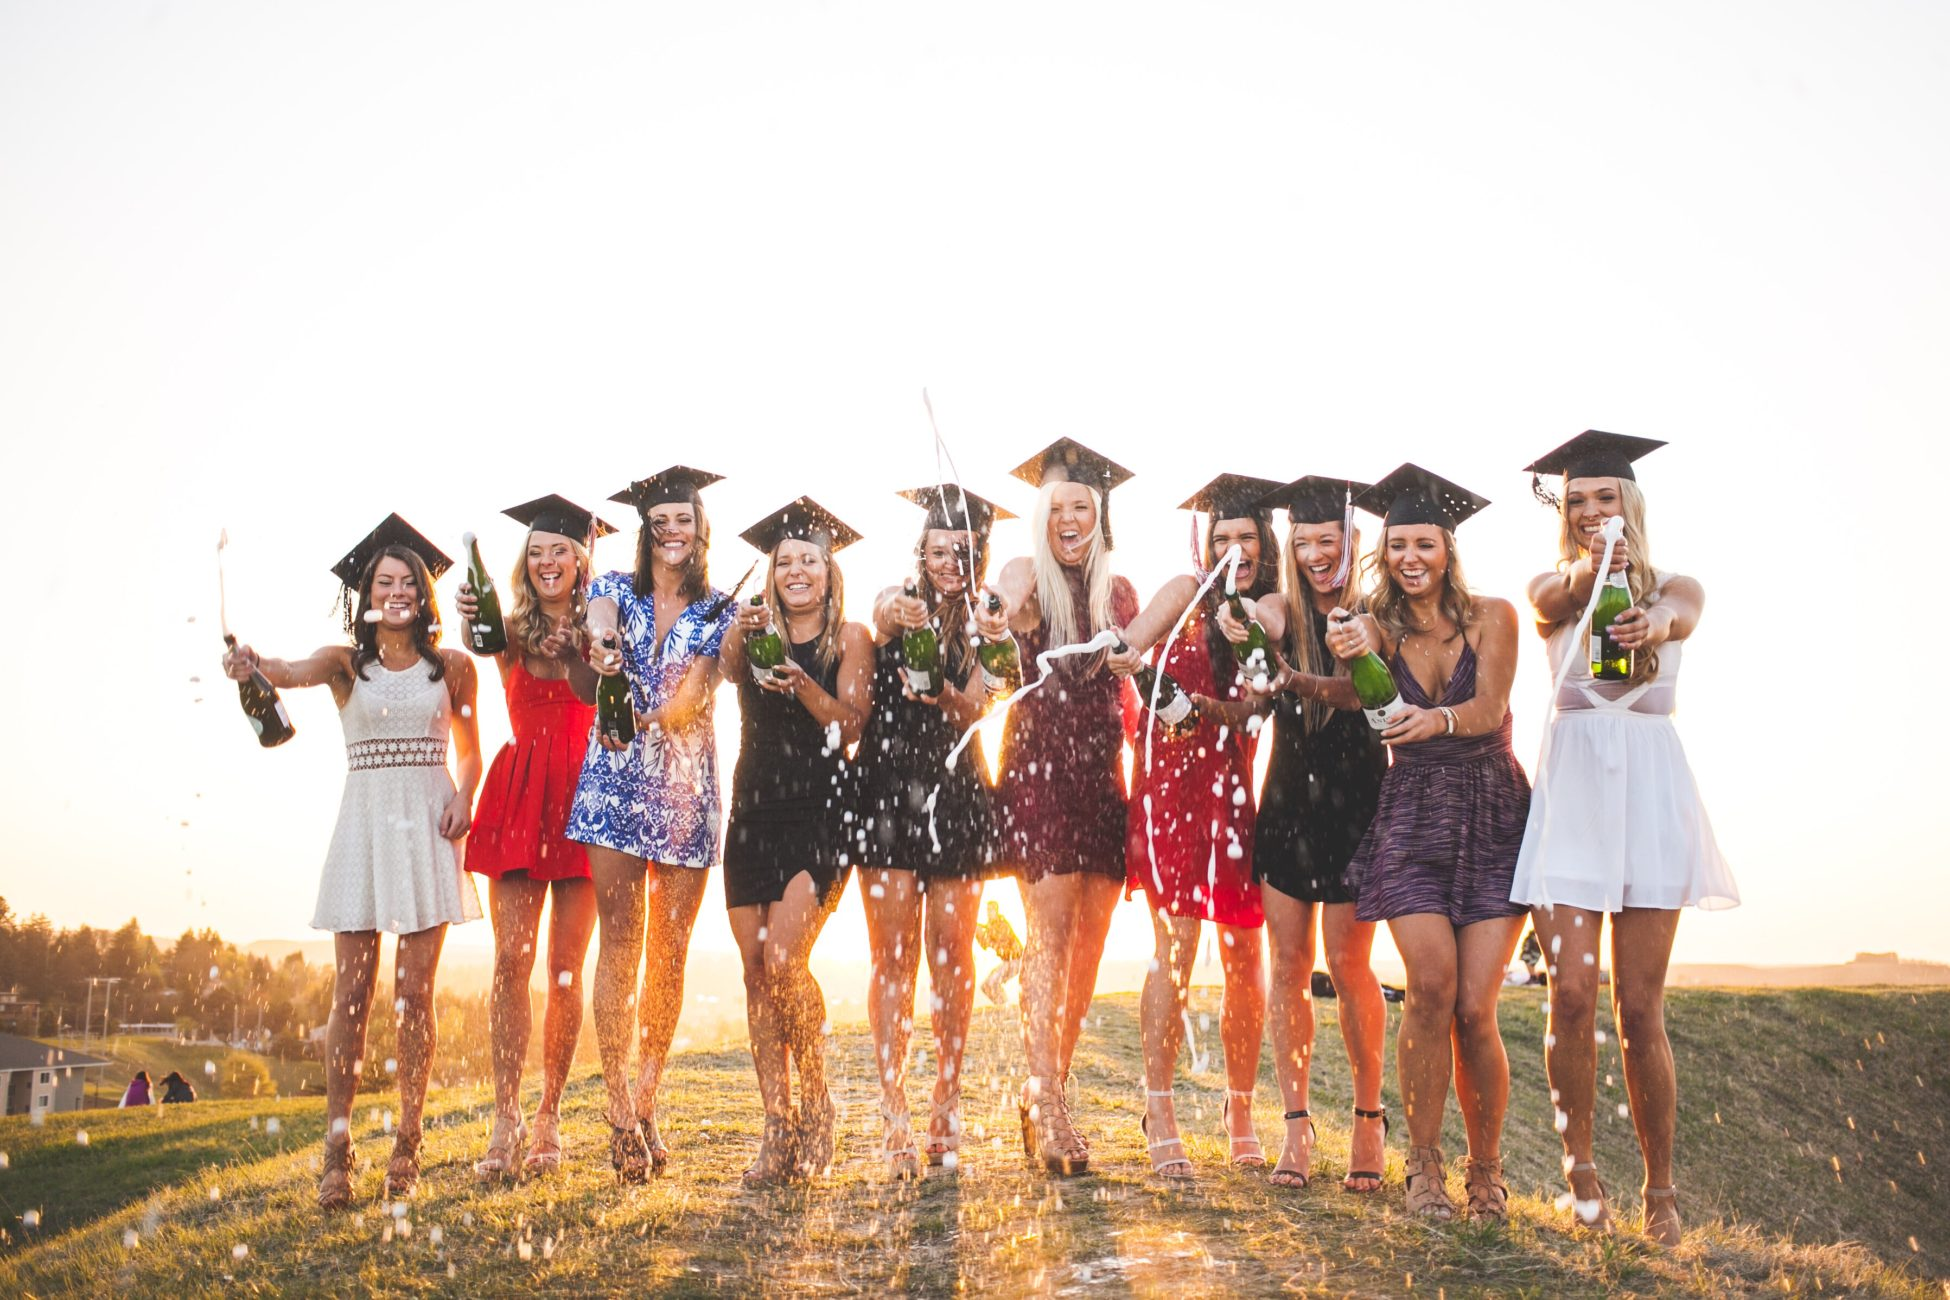 group of girls celebrating graduation - graduation party ideas